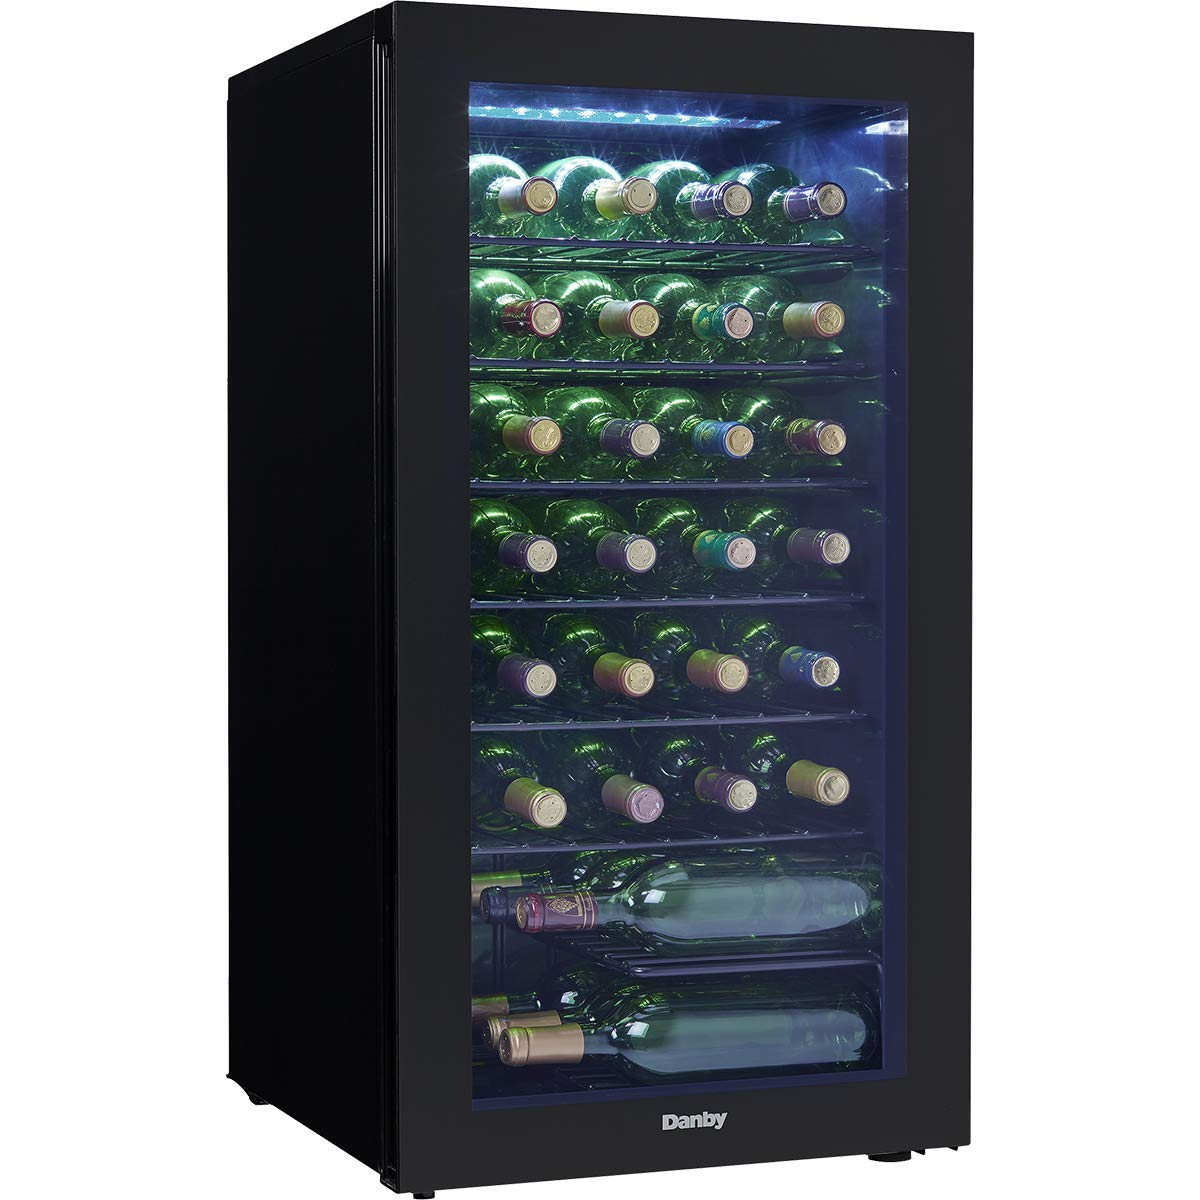 DWC032A2BDB Freestanding Wine Cooler with 36 Bottle Capacity, Adjustable Wine Racks, Single Zone, LED Light